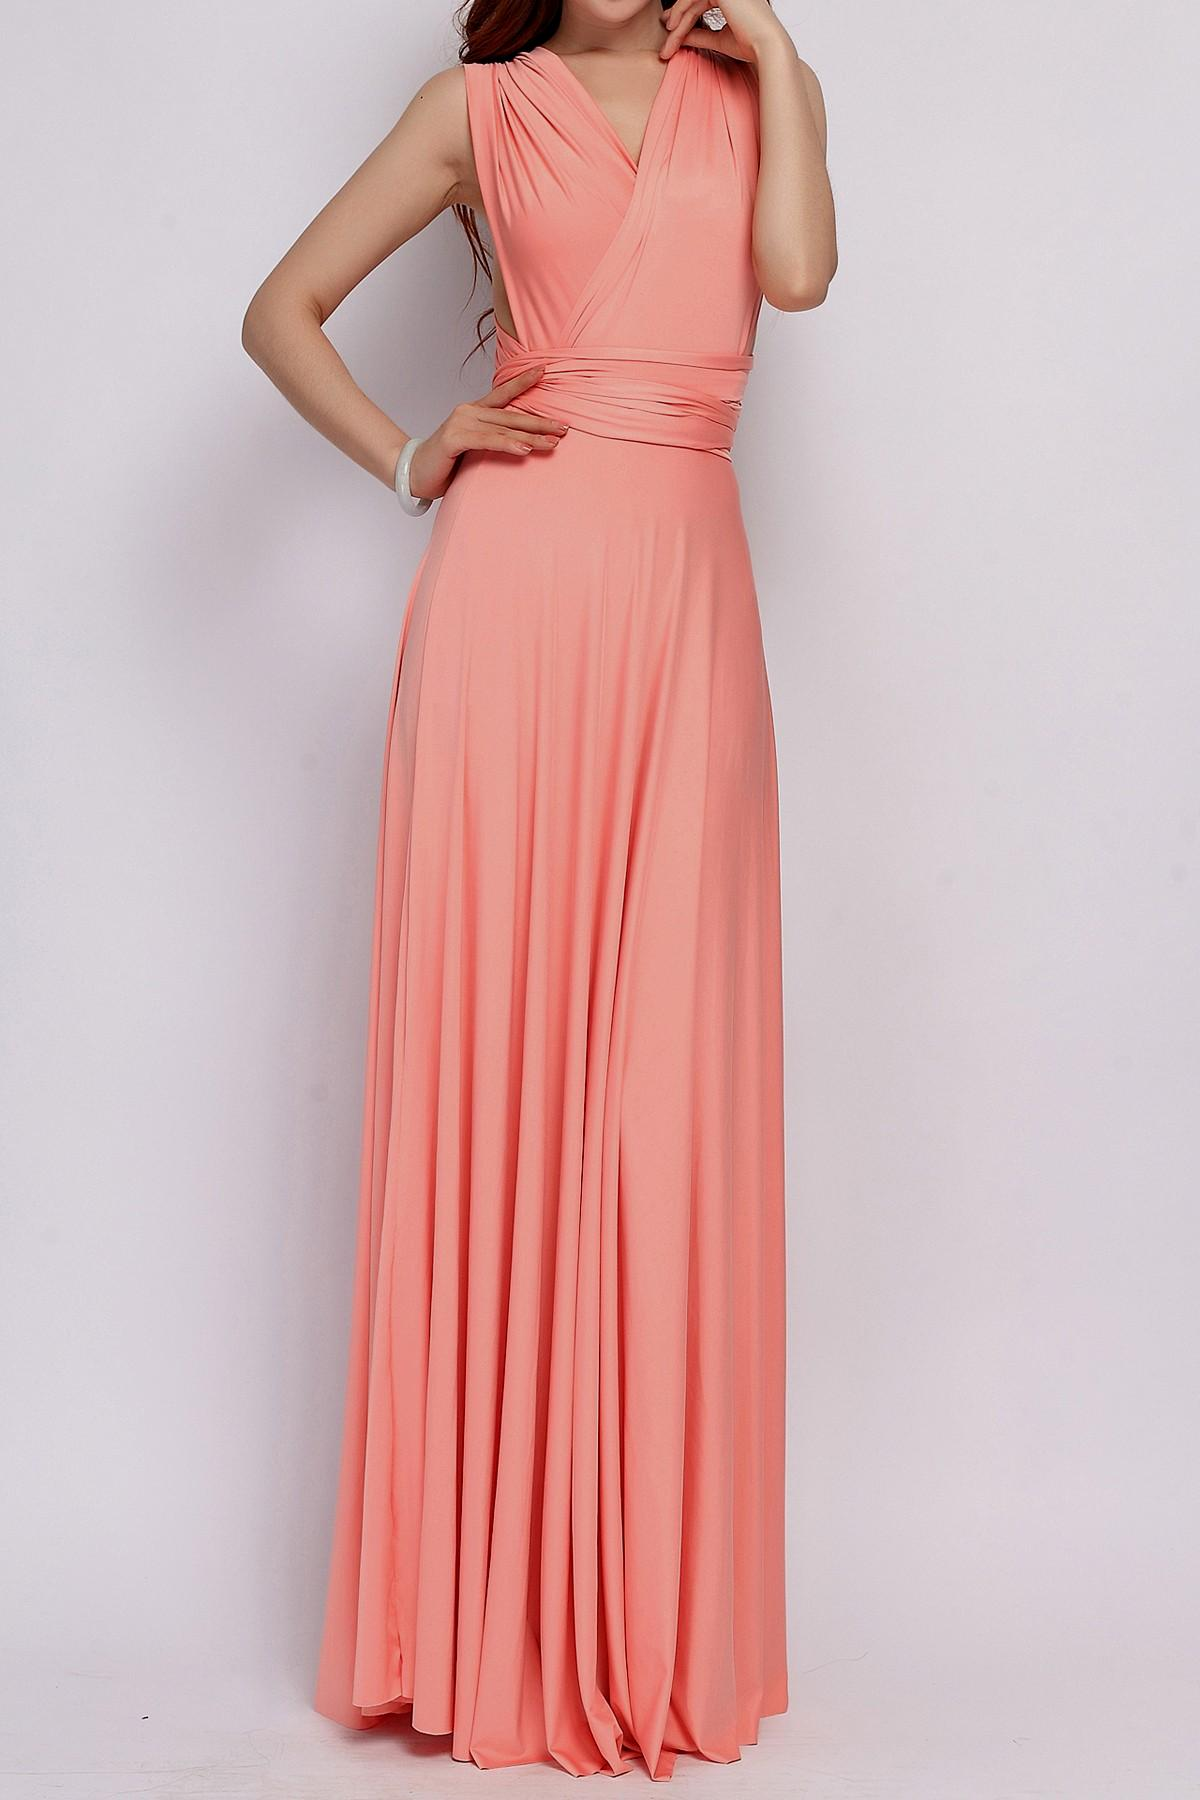 light pink casual maxi dress photo - 1